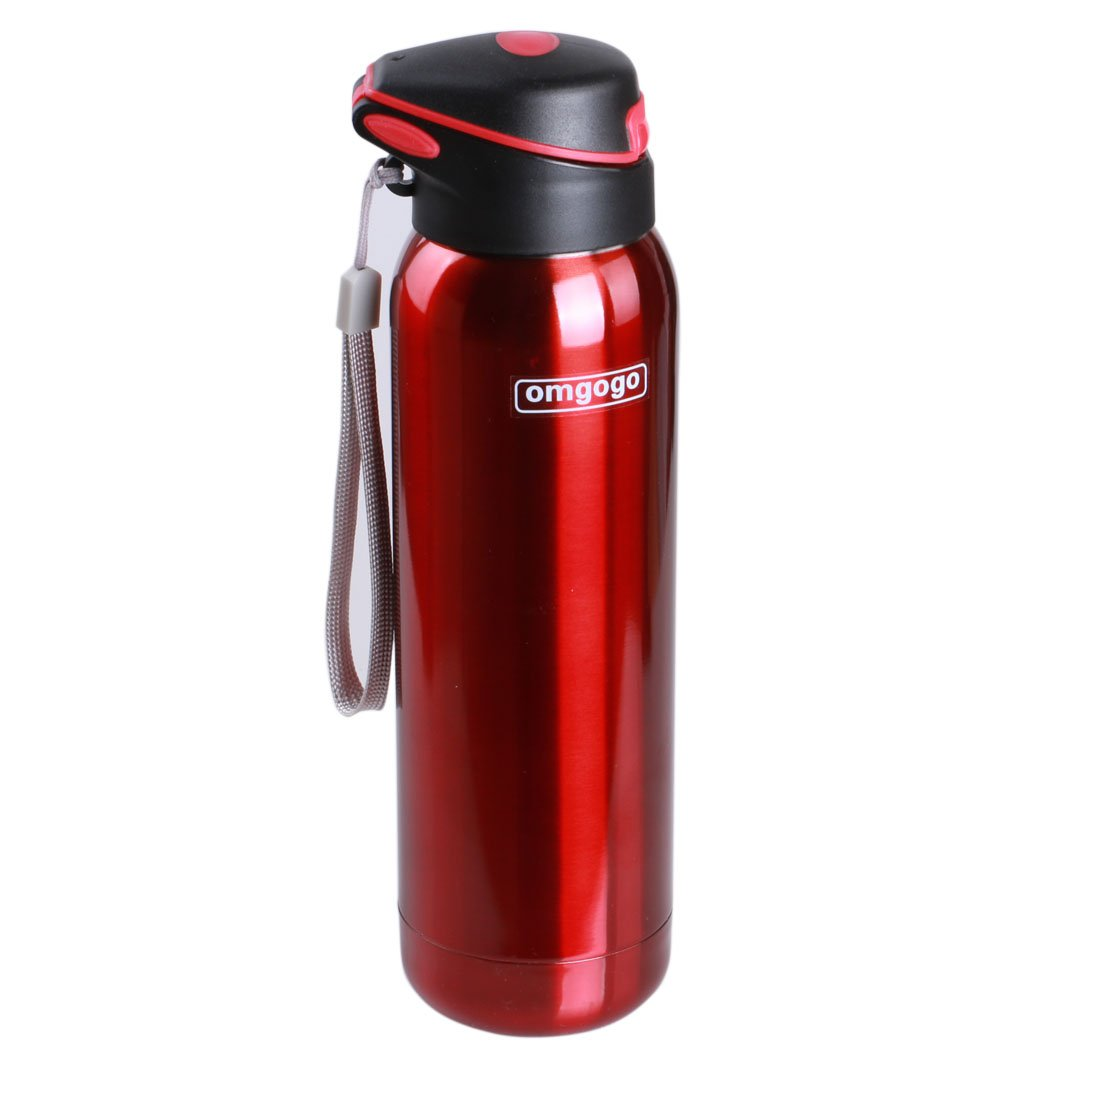 Red Yoga Crossfit Tennis Gym Travel Running Hiking or Office Use 16oz omgogo Water Bottle,Stainless Steel Water Bottle,Double Wall Insulated,Thermos Water Bottle with Straw Perfect for Sports MMA